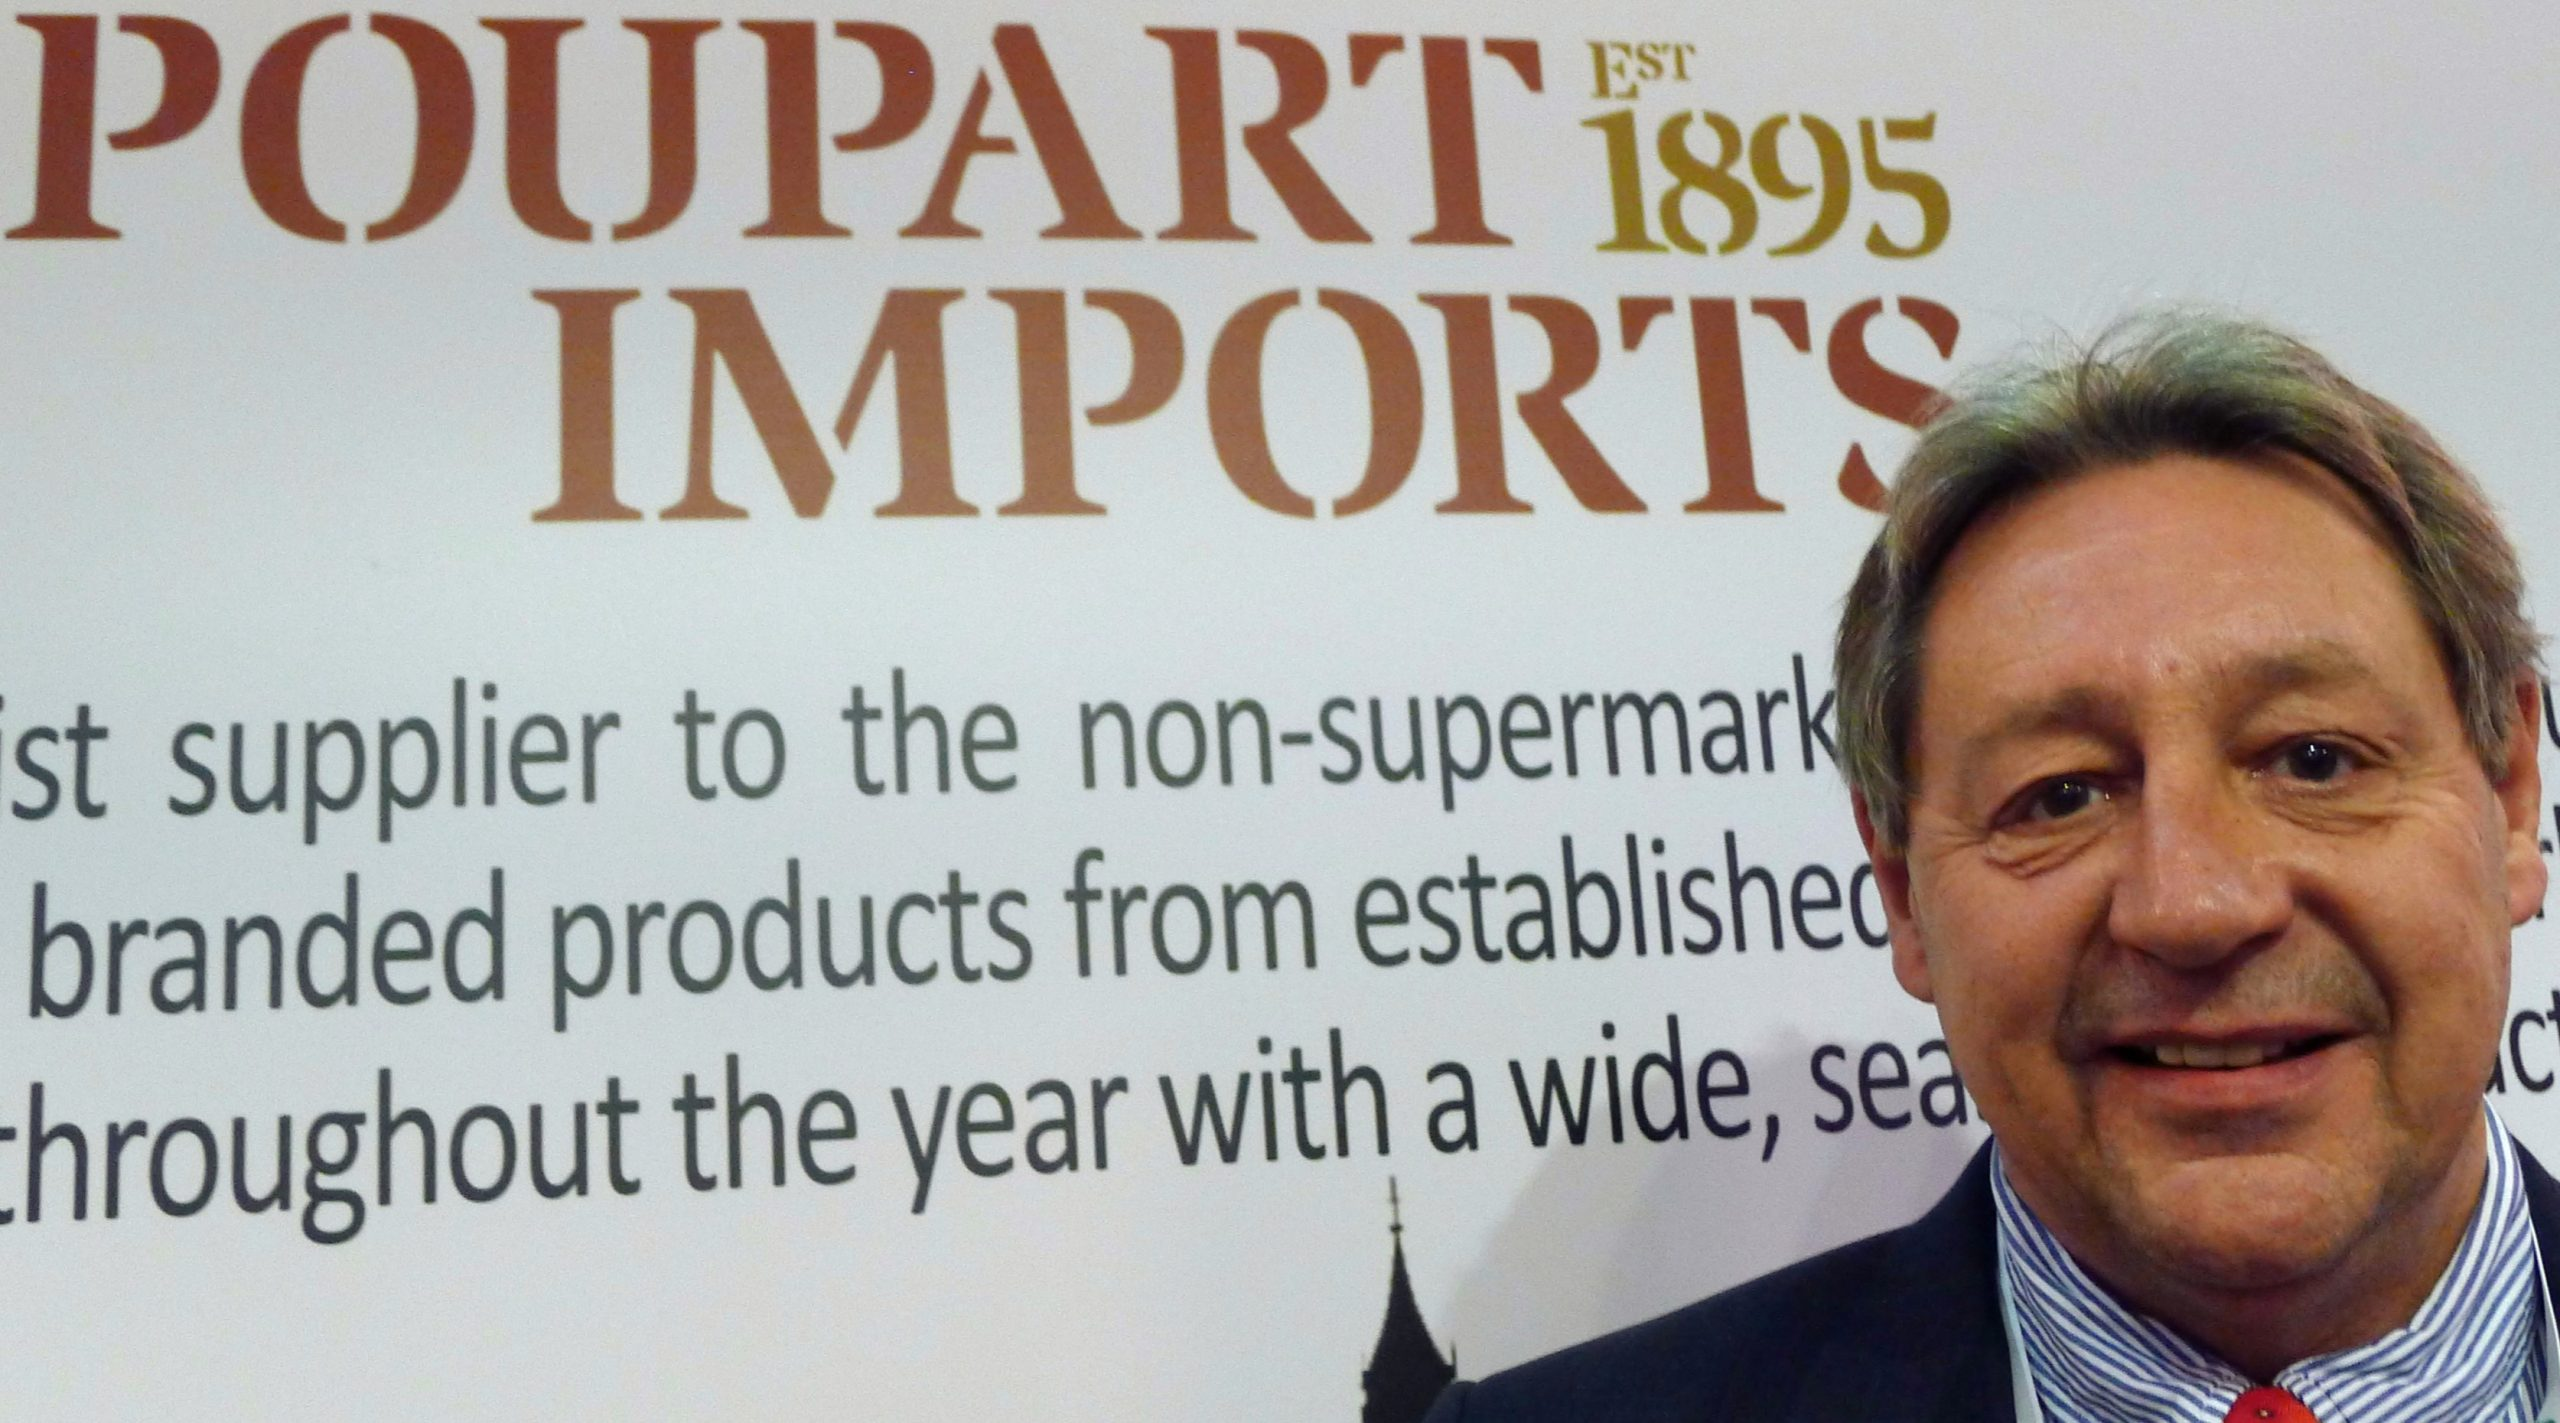 Topfruit, grapes and summer stonefruit / soft-fruit are the mainstays of Poupart Imports' success and continue to show annual growth, Green said.